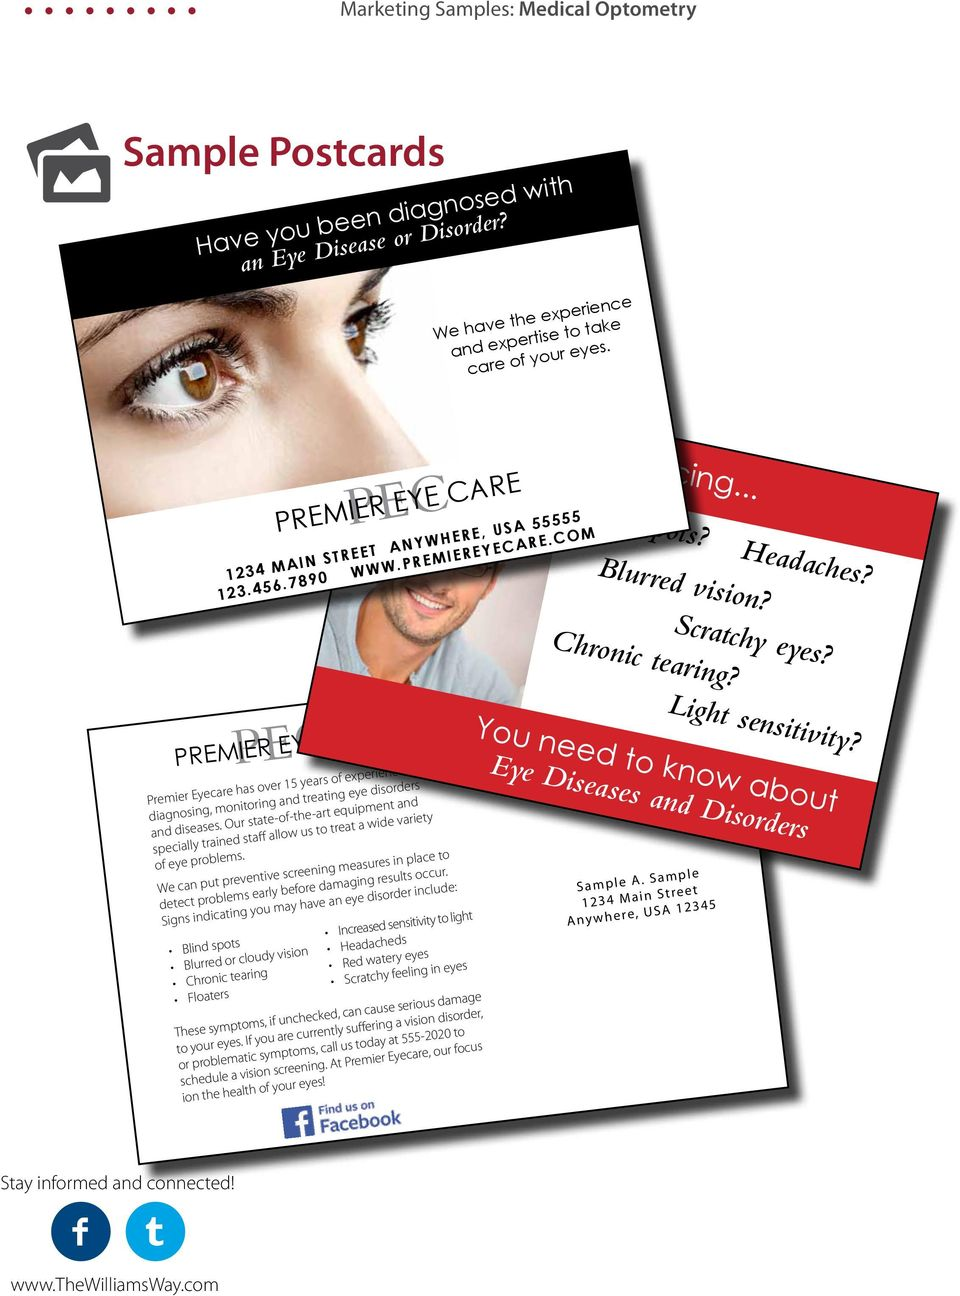 PEC PREMIER EYE CARE Premier Eyecare has over 15 years of experience in diagnosing, monitoring and treating eye disorders and diseases.